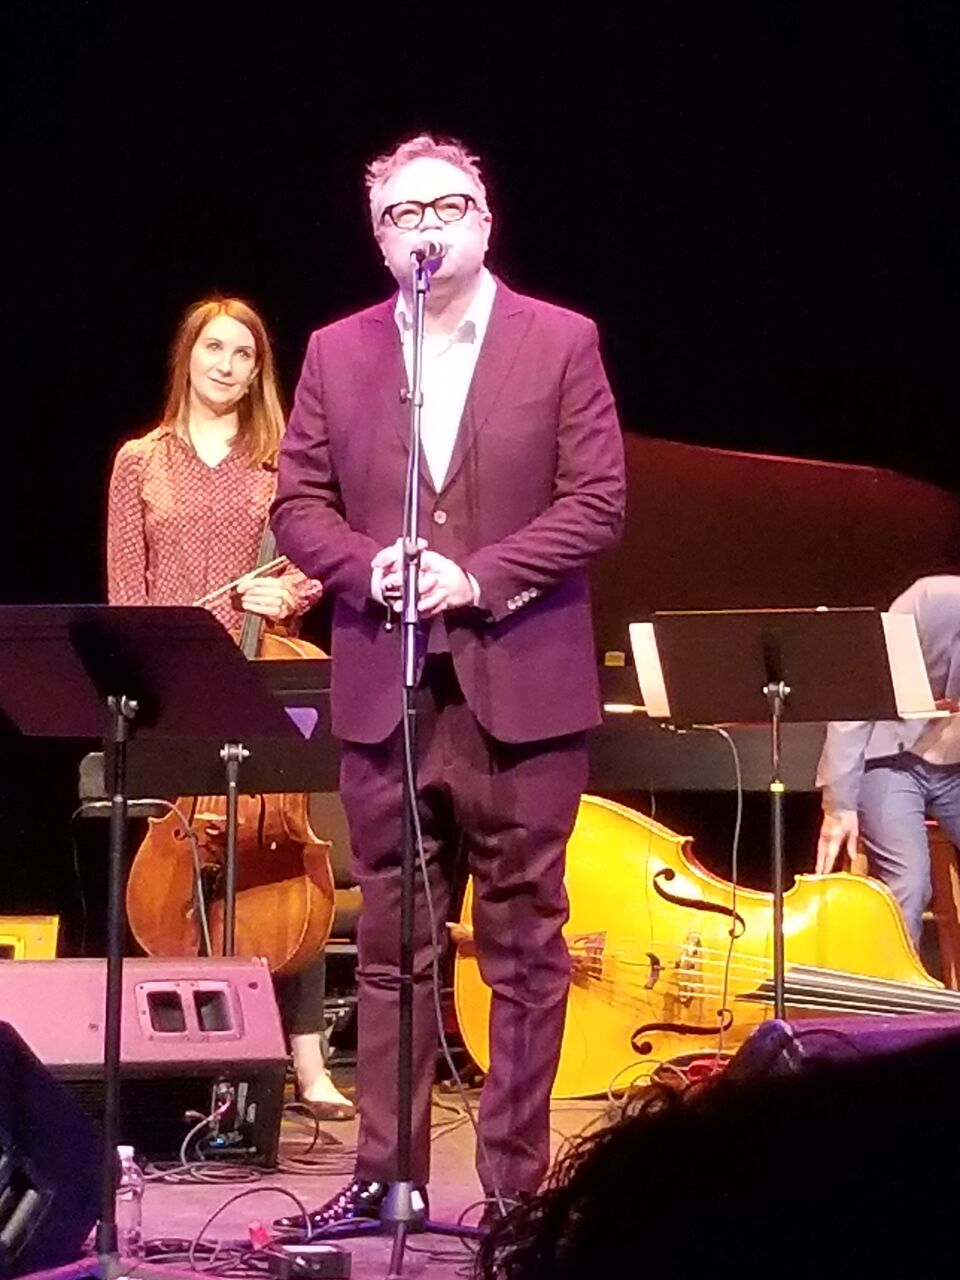 I was thrilled to see Steven Page play with Art of Time Ensemble back in  2015. When I saw that he was playing (somewhat) locally again, I was really  excited ...